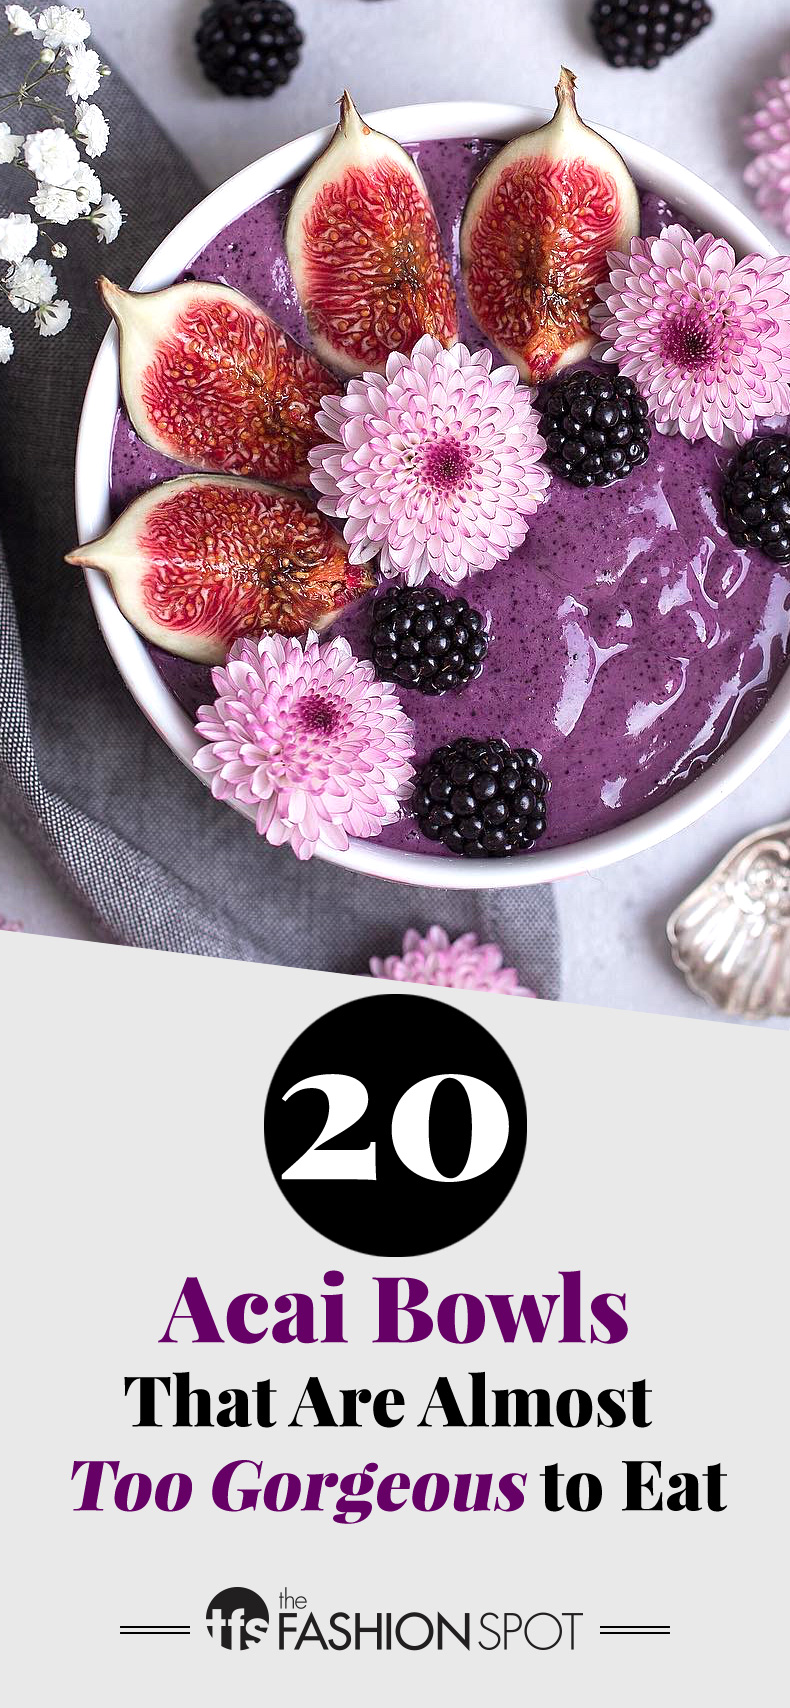 20 Acai Bowl Recipes That Are Almost Too Gorgeous to Eat